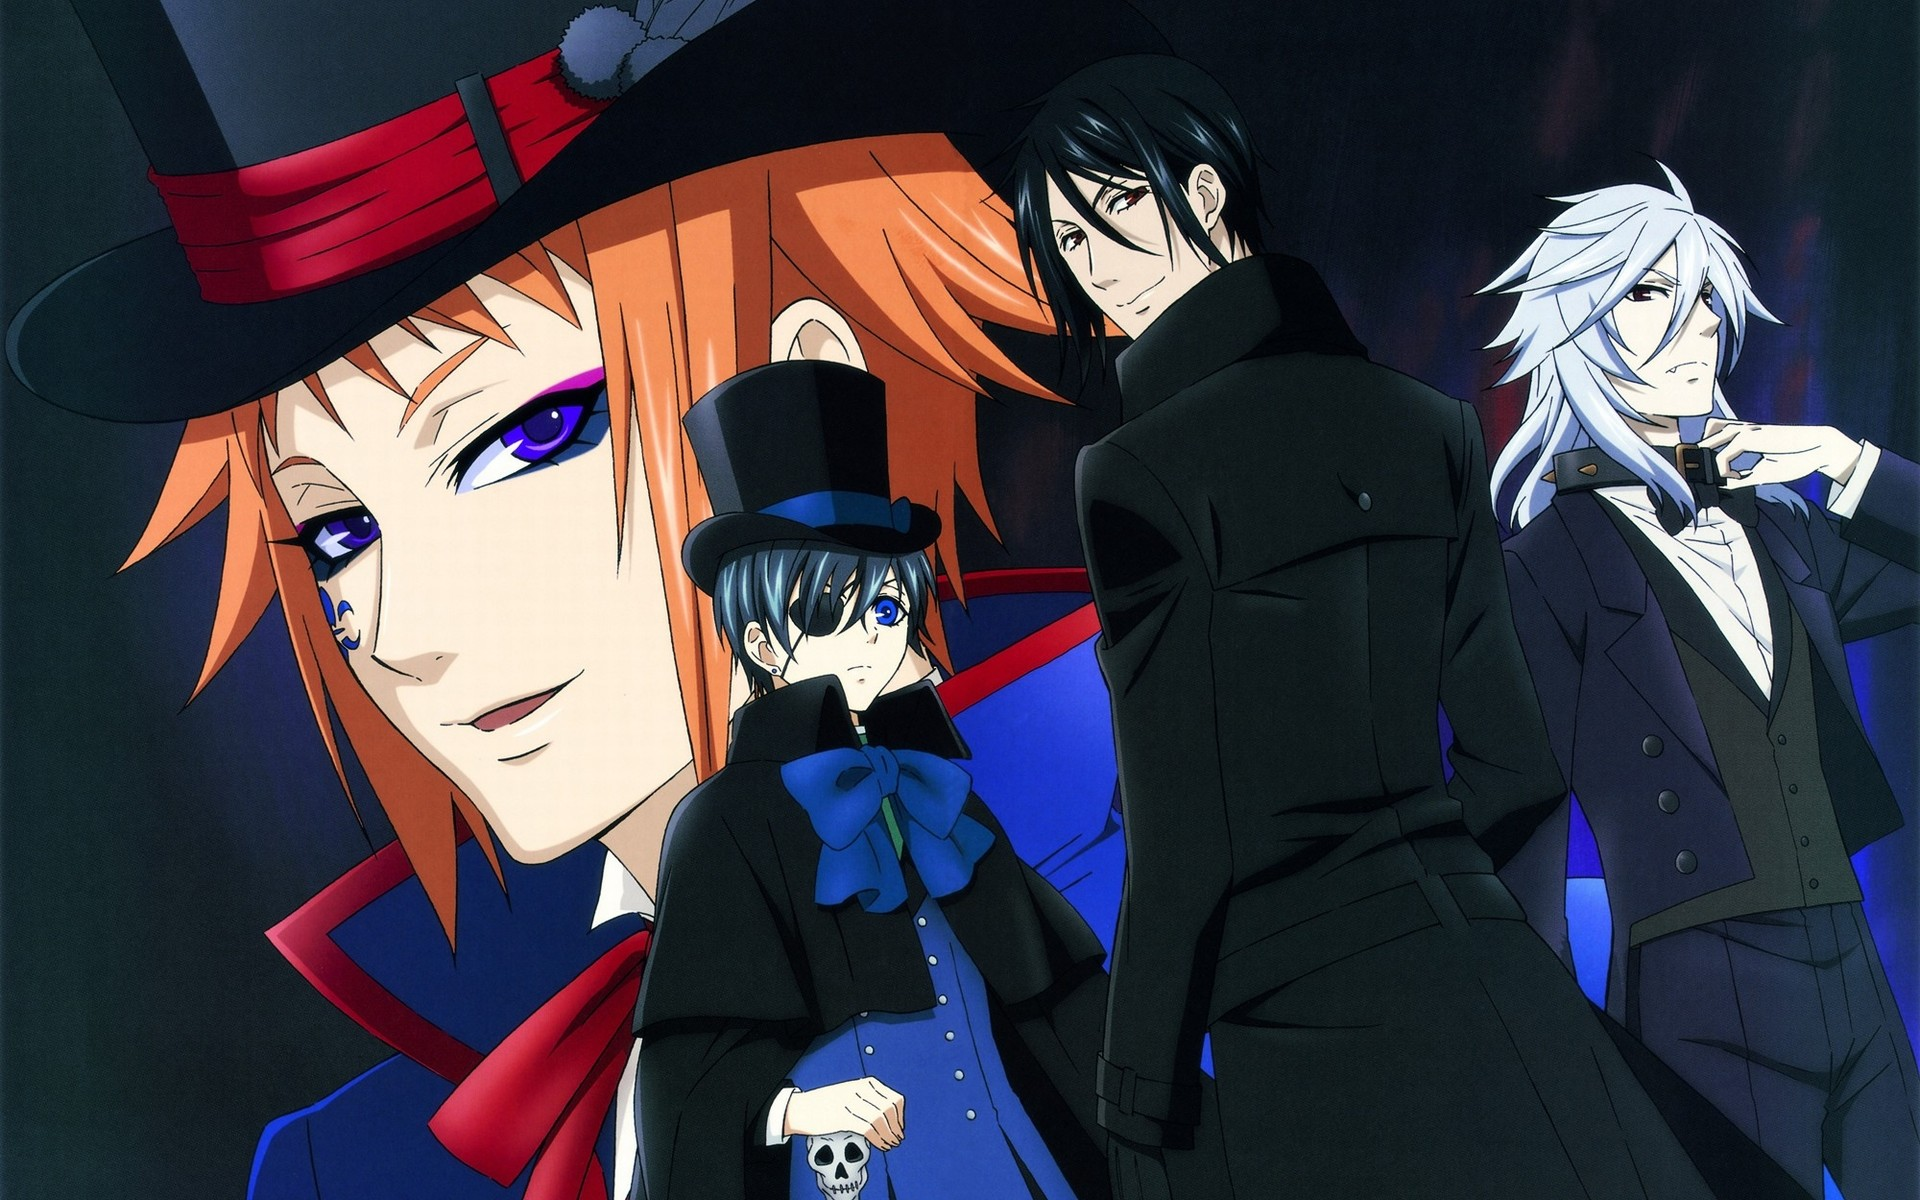 Res: 1920x1200, Wallpapersxl Ciel Phantomhive Eyepatch Header Images Kuroshitsuji Michaelis  Sebastian.